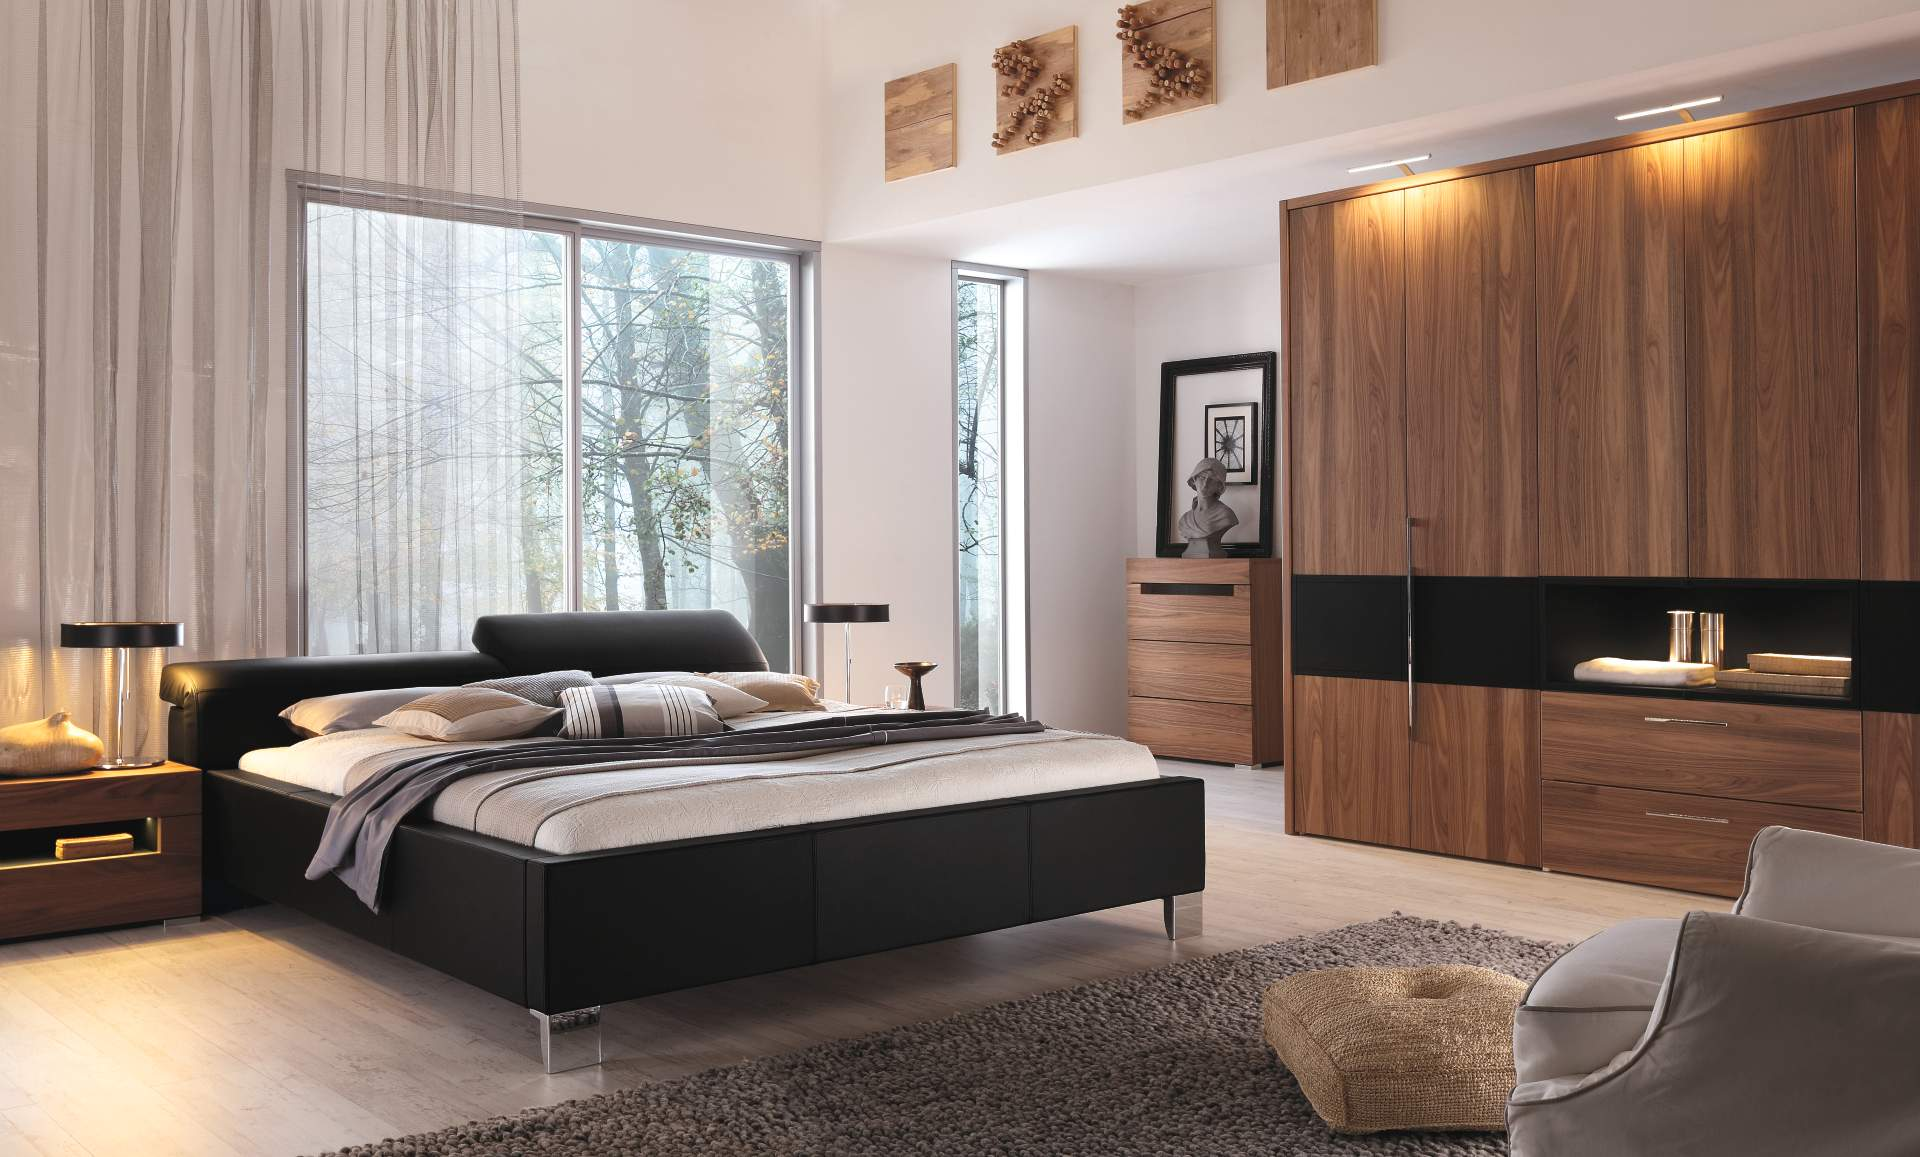 H lsta schlafzimmer m bel kleiderschrank bett for Contemporary guest bedroom ideas